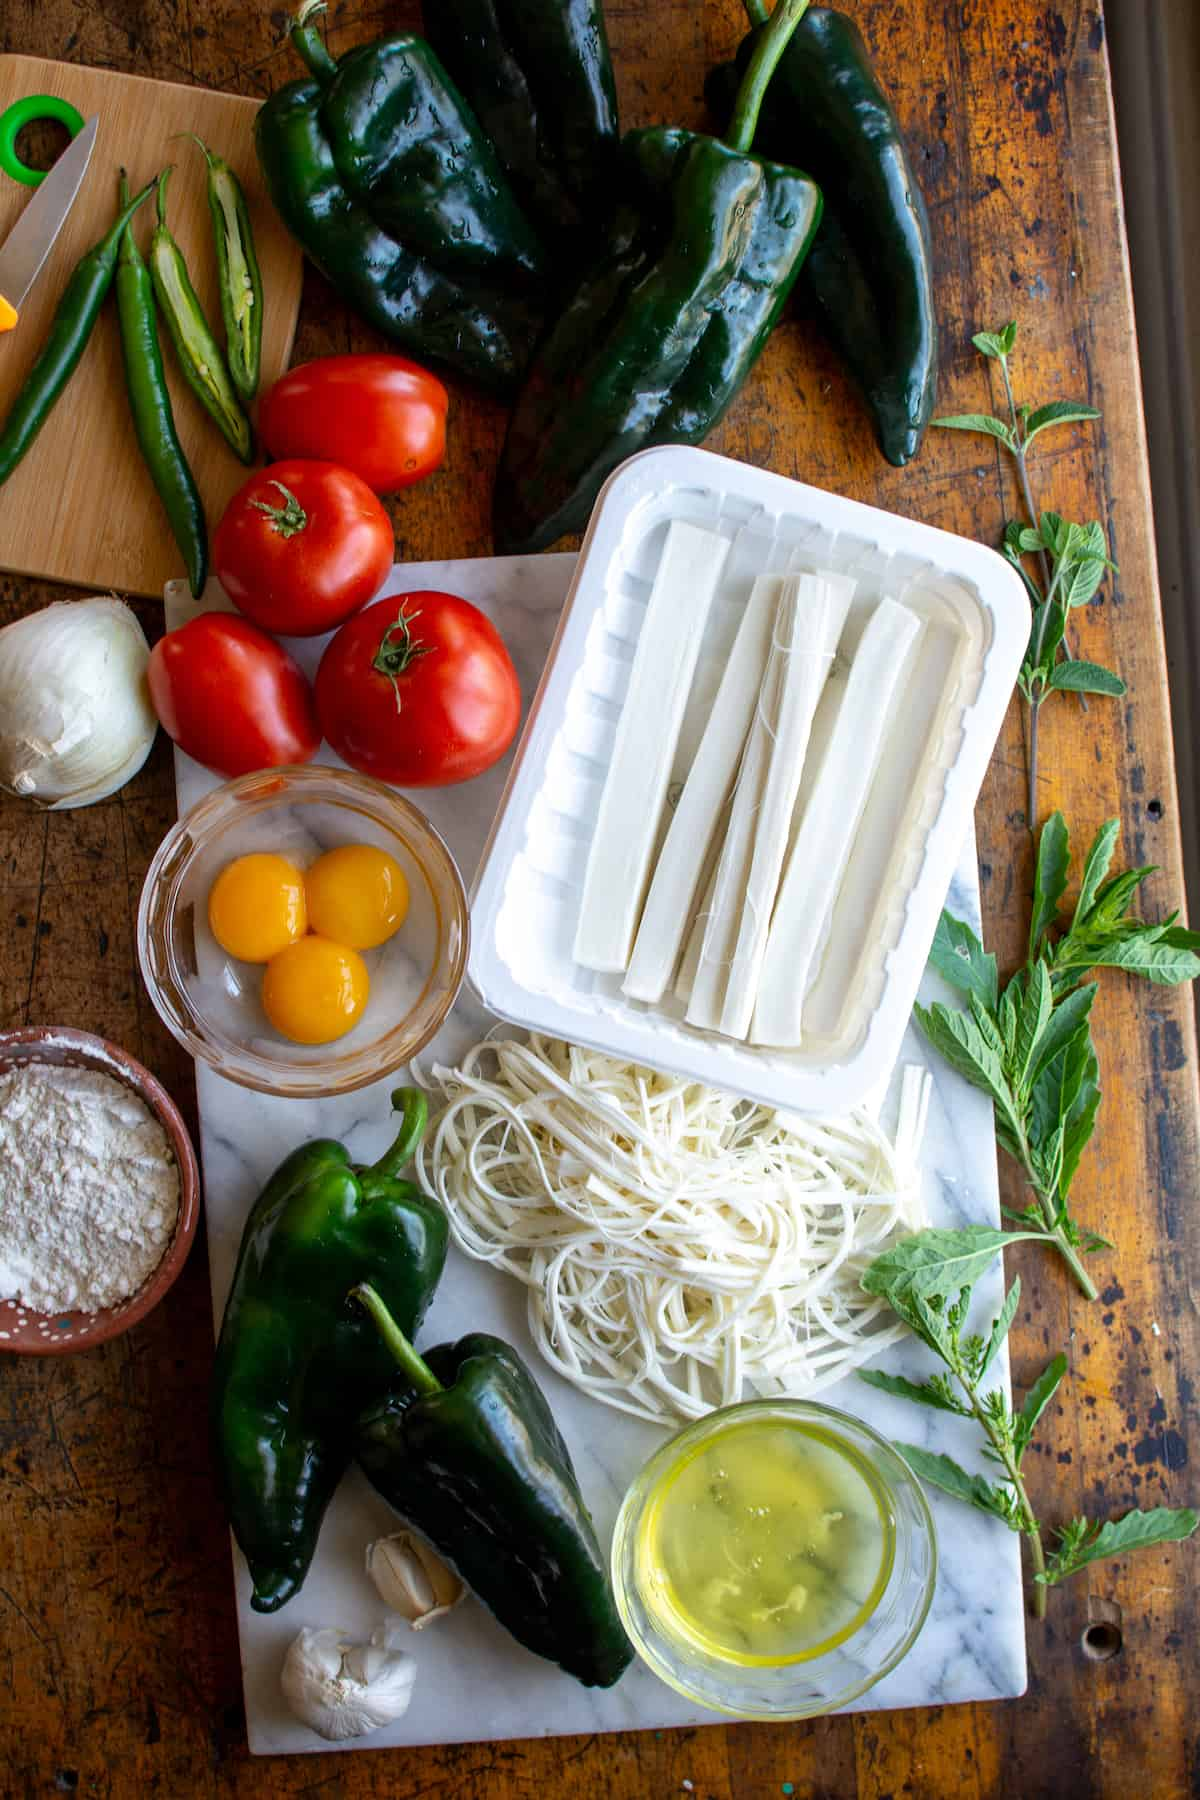 The ingredients for Chile Rellenos on a wood table including poblano peppers, Oaxaca cheese, tomatoes, serranos, and eggs.